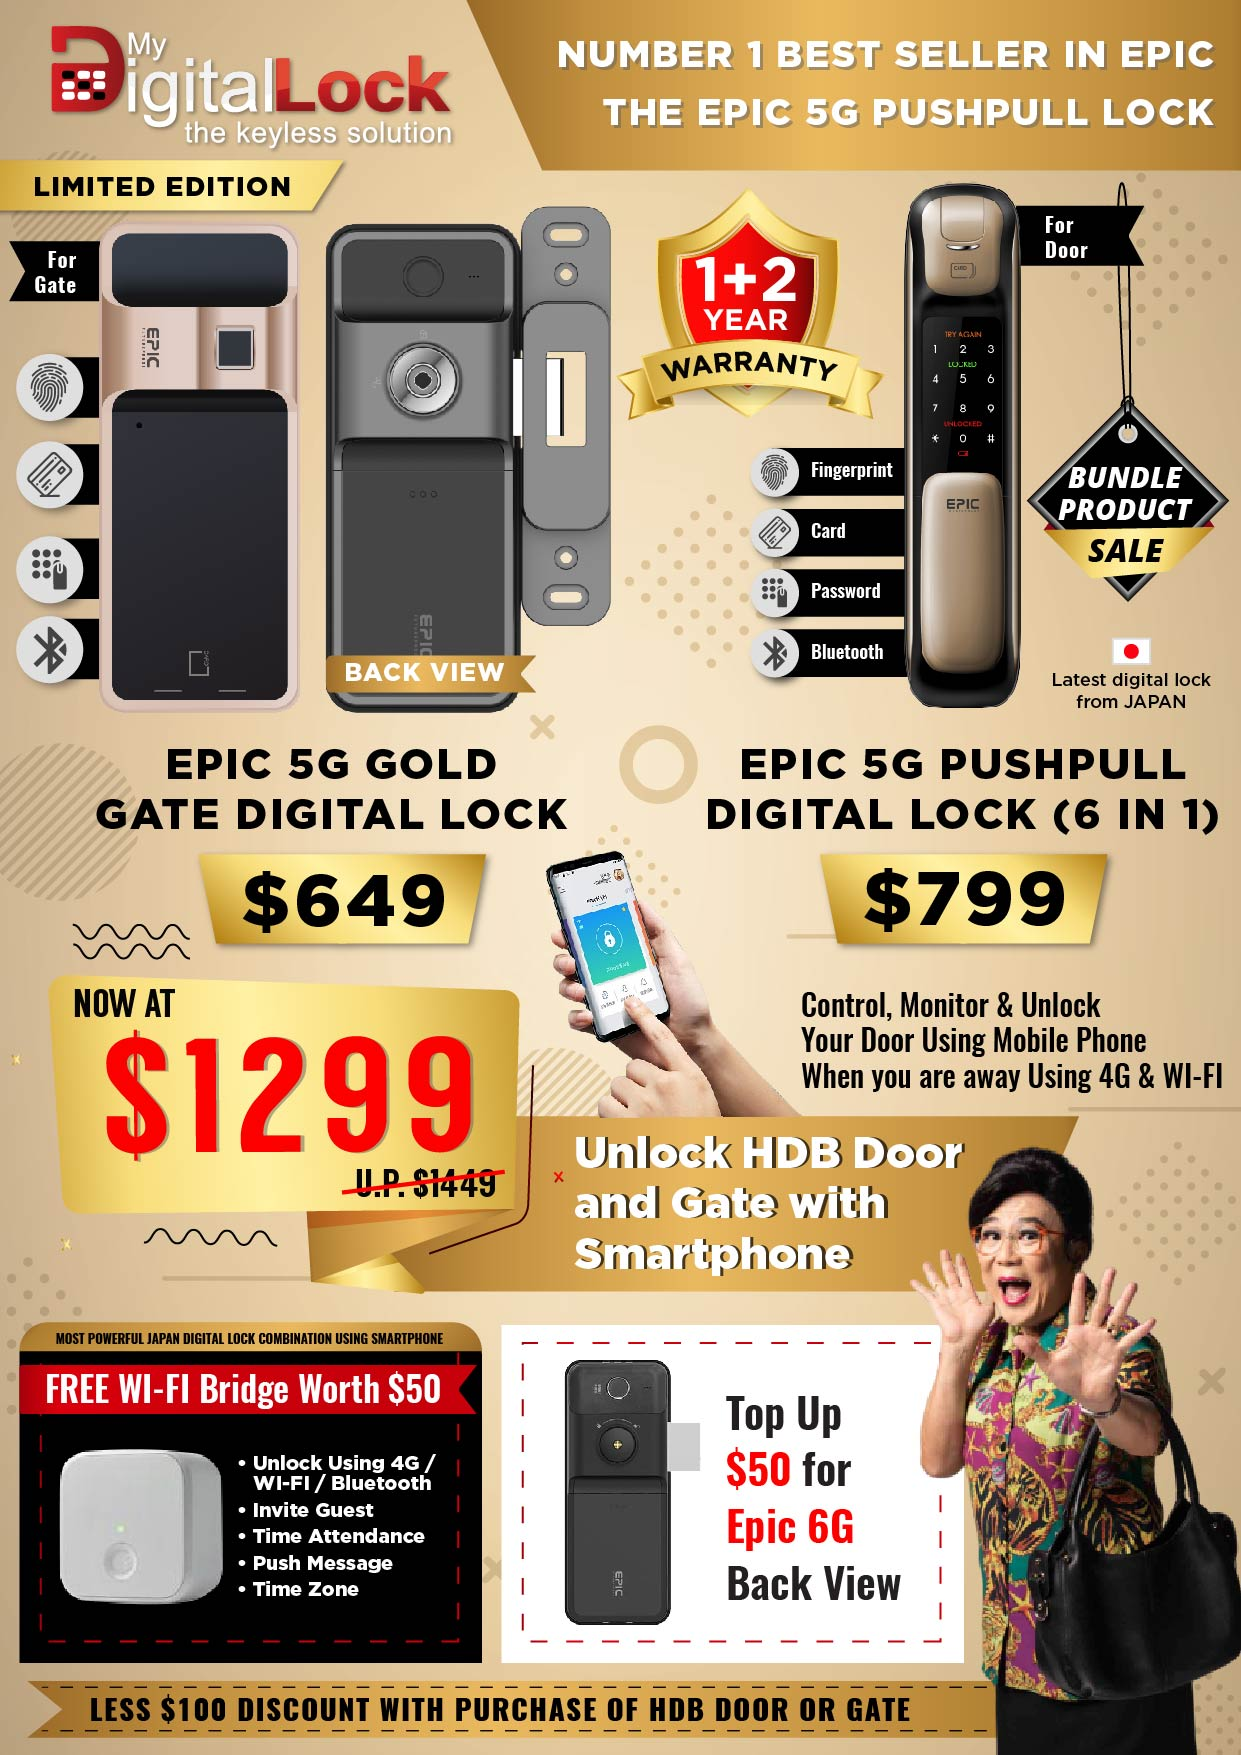 EPIC-5G-Gold-Gate-and-5G-Push-Pull-Digital-Lock-Promotion-10